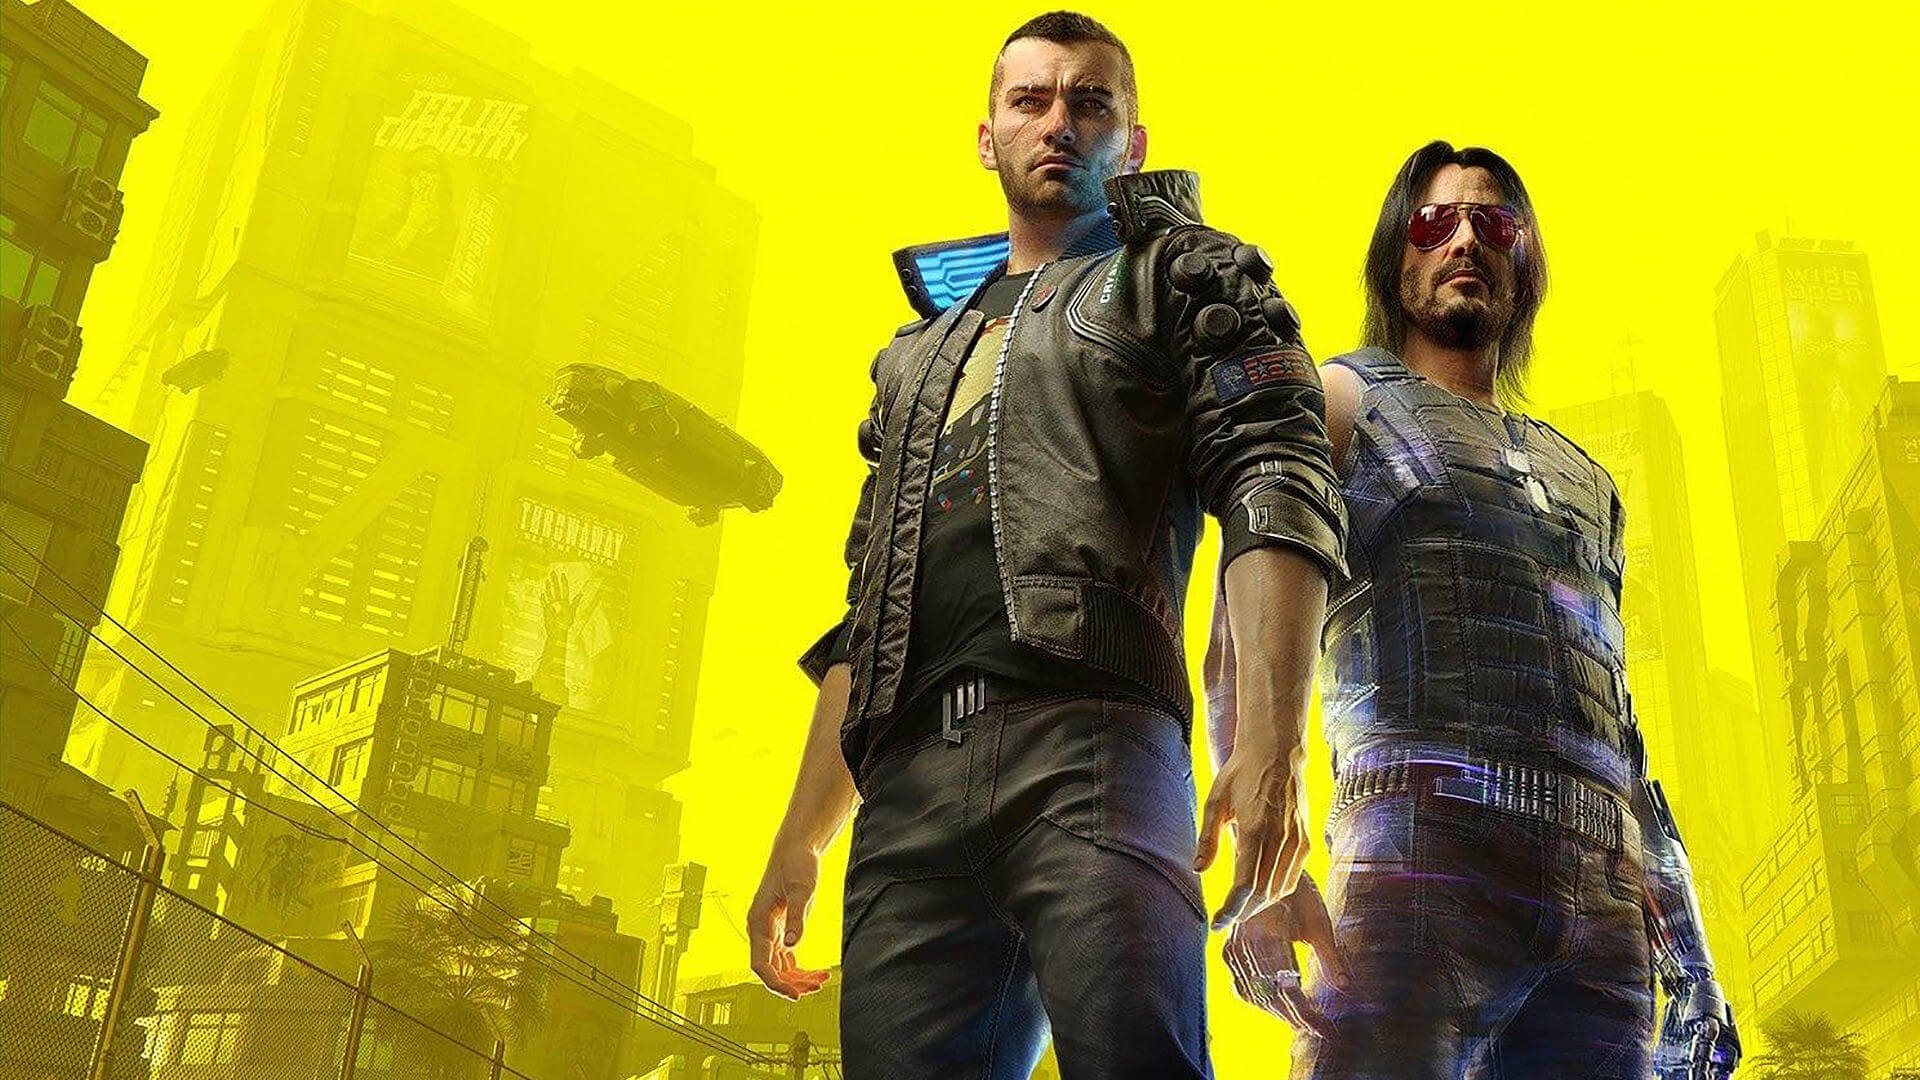 Cyberpunk 2077 Review - Livin' it Up in Night City